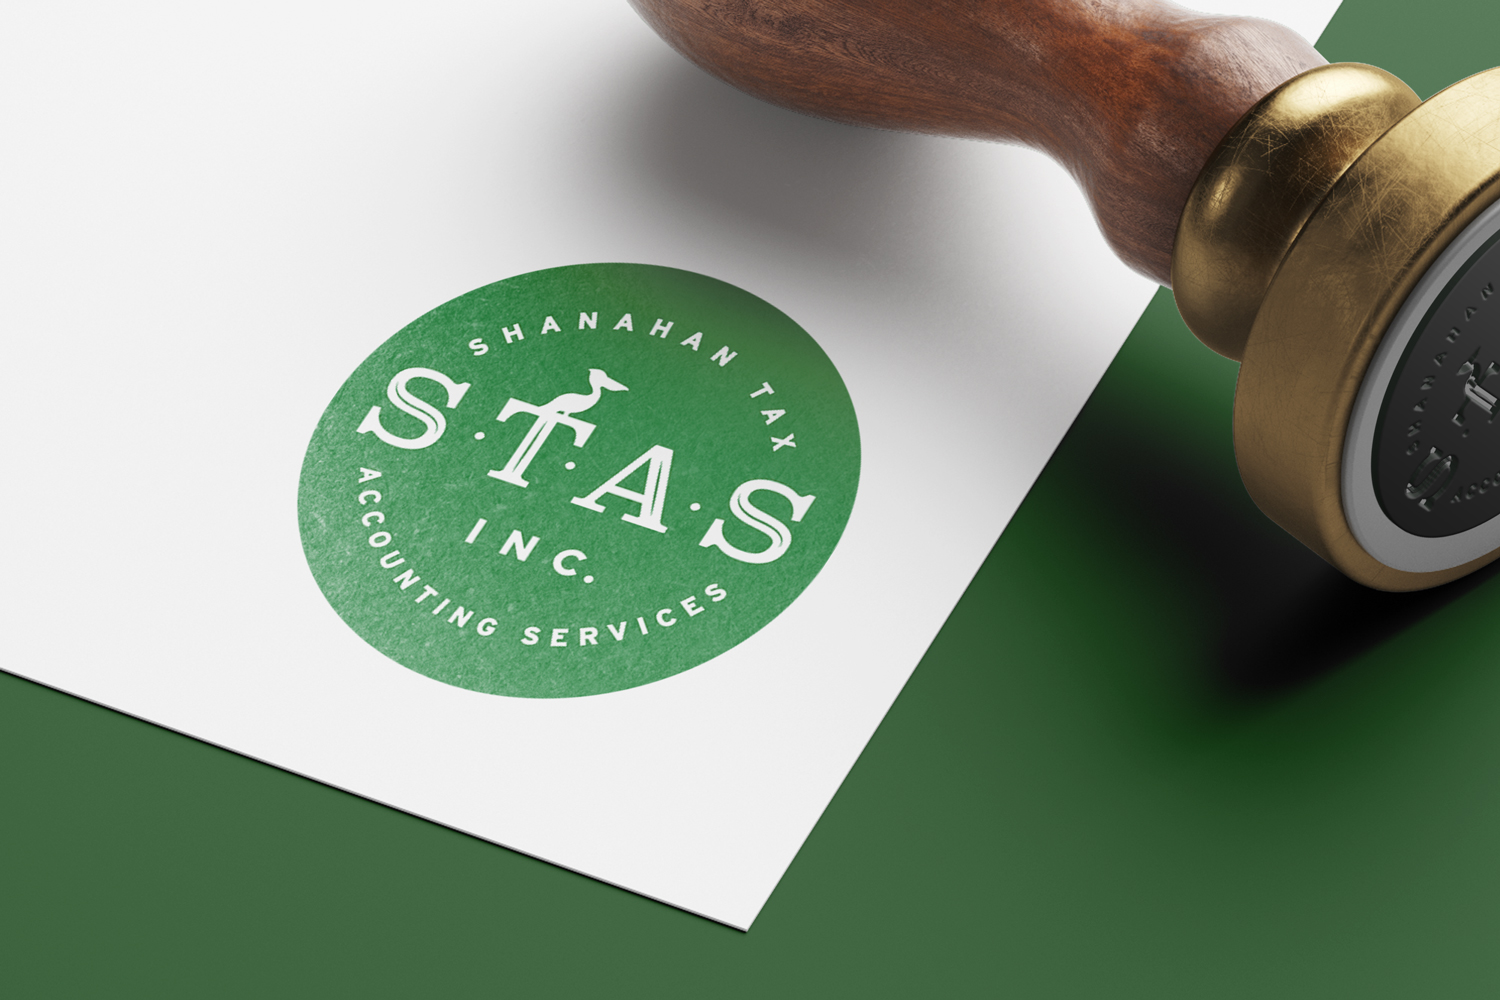 Shanahan Tax Accounting Services: Logo Design